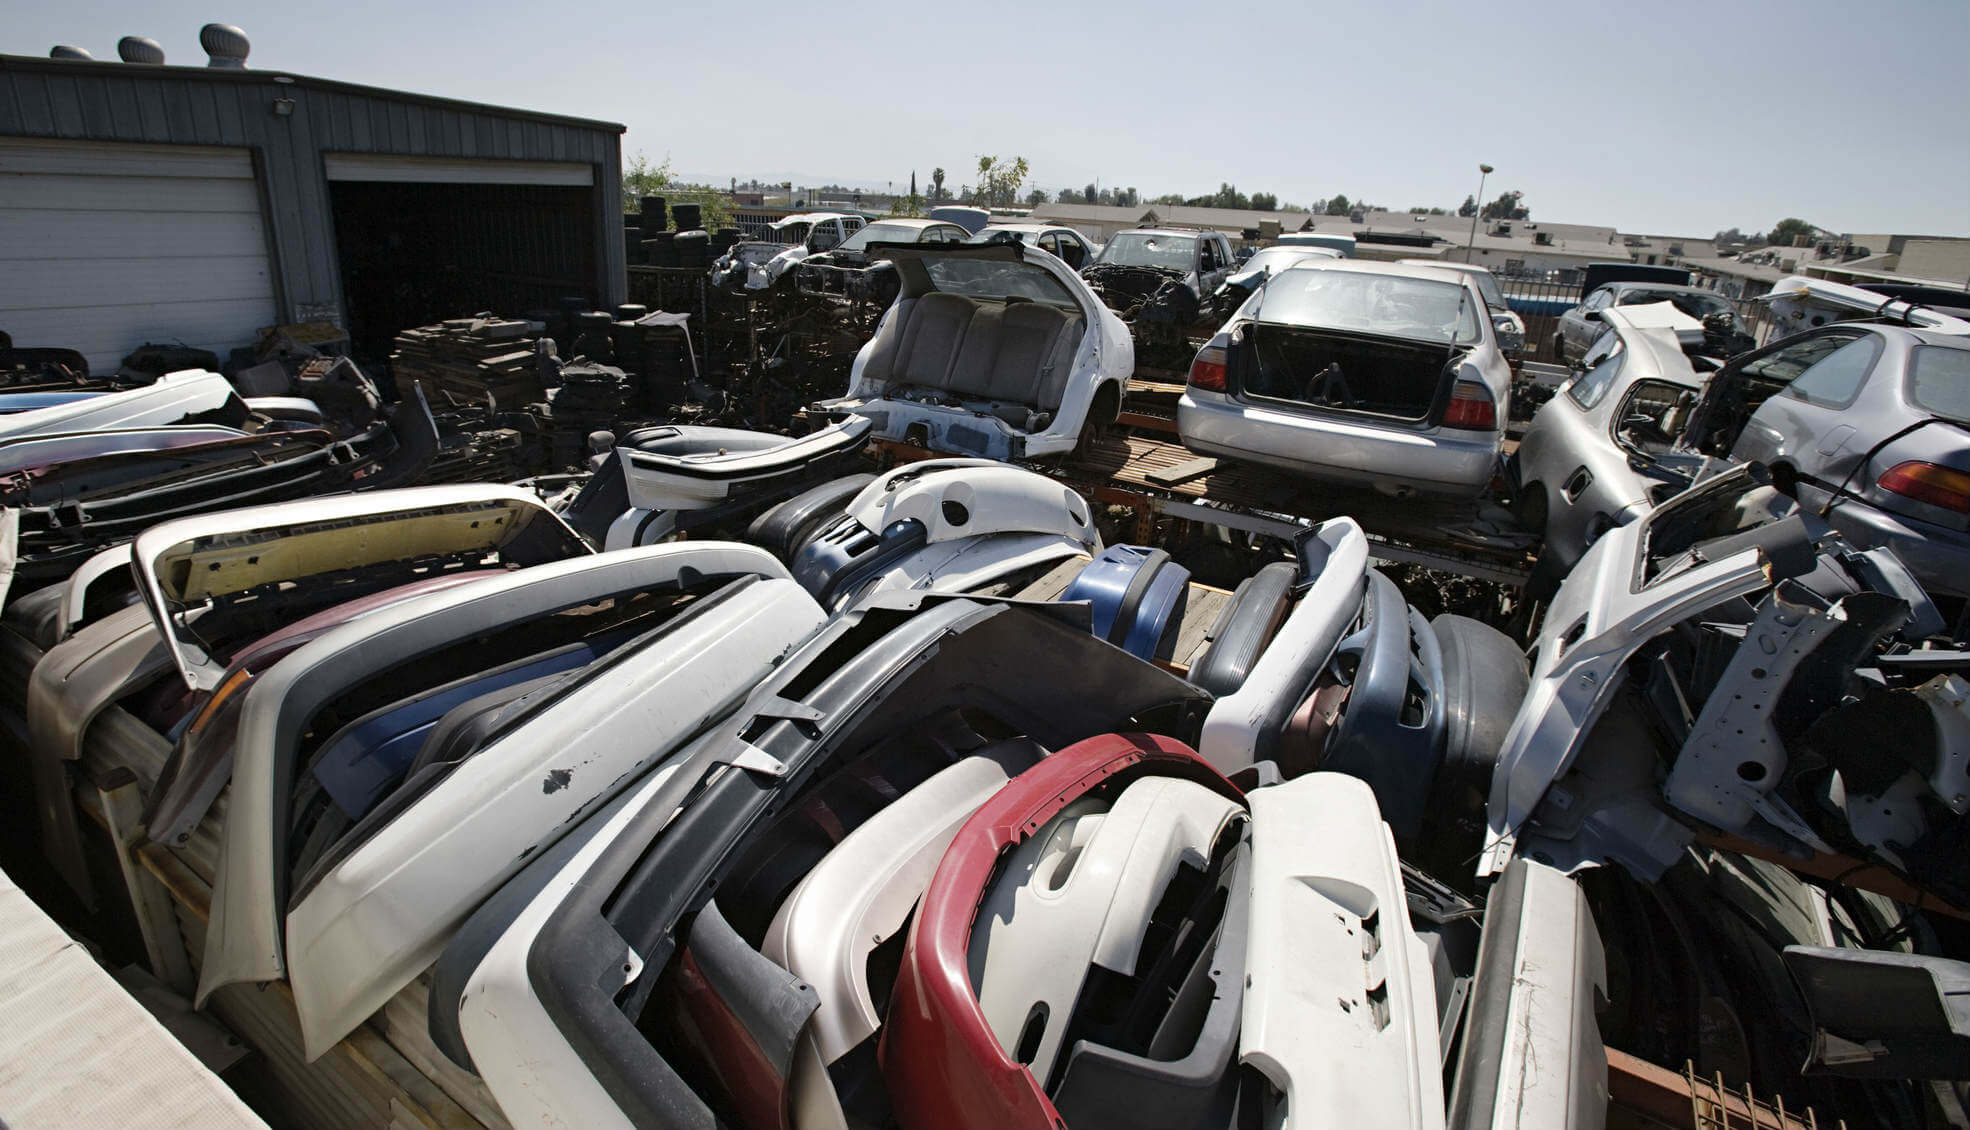 aw-towing-scrap-car-removal